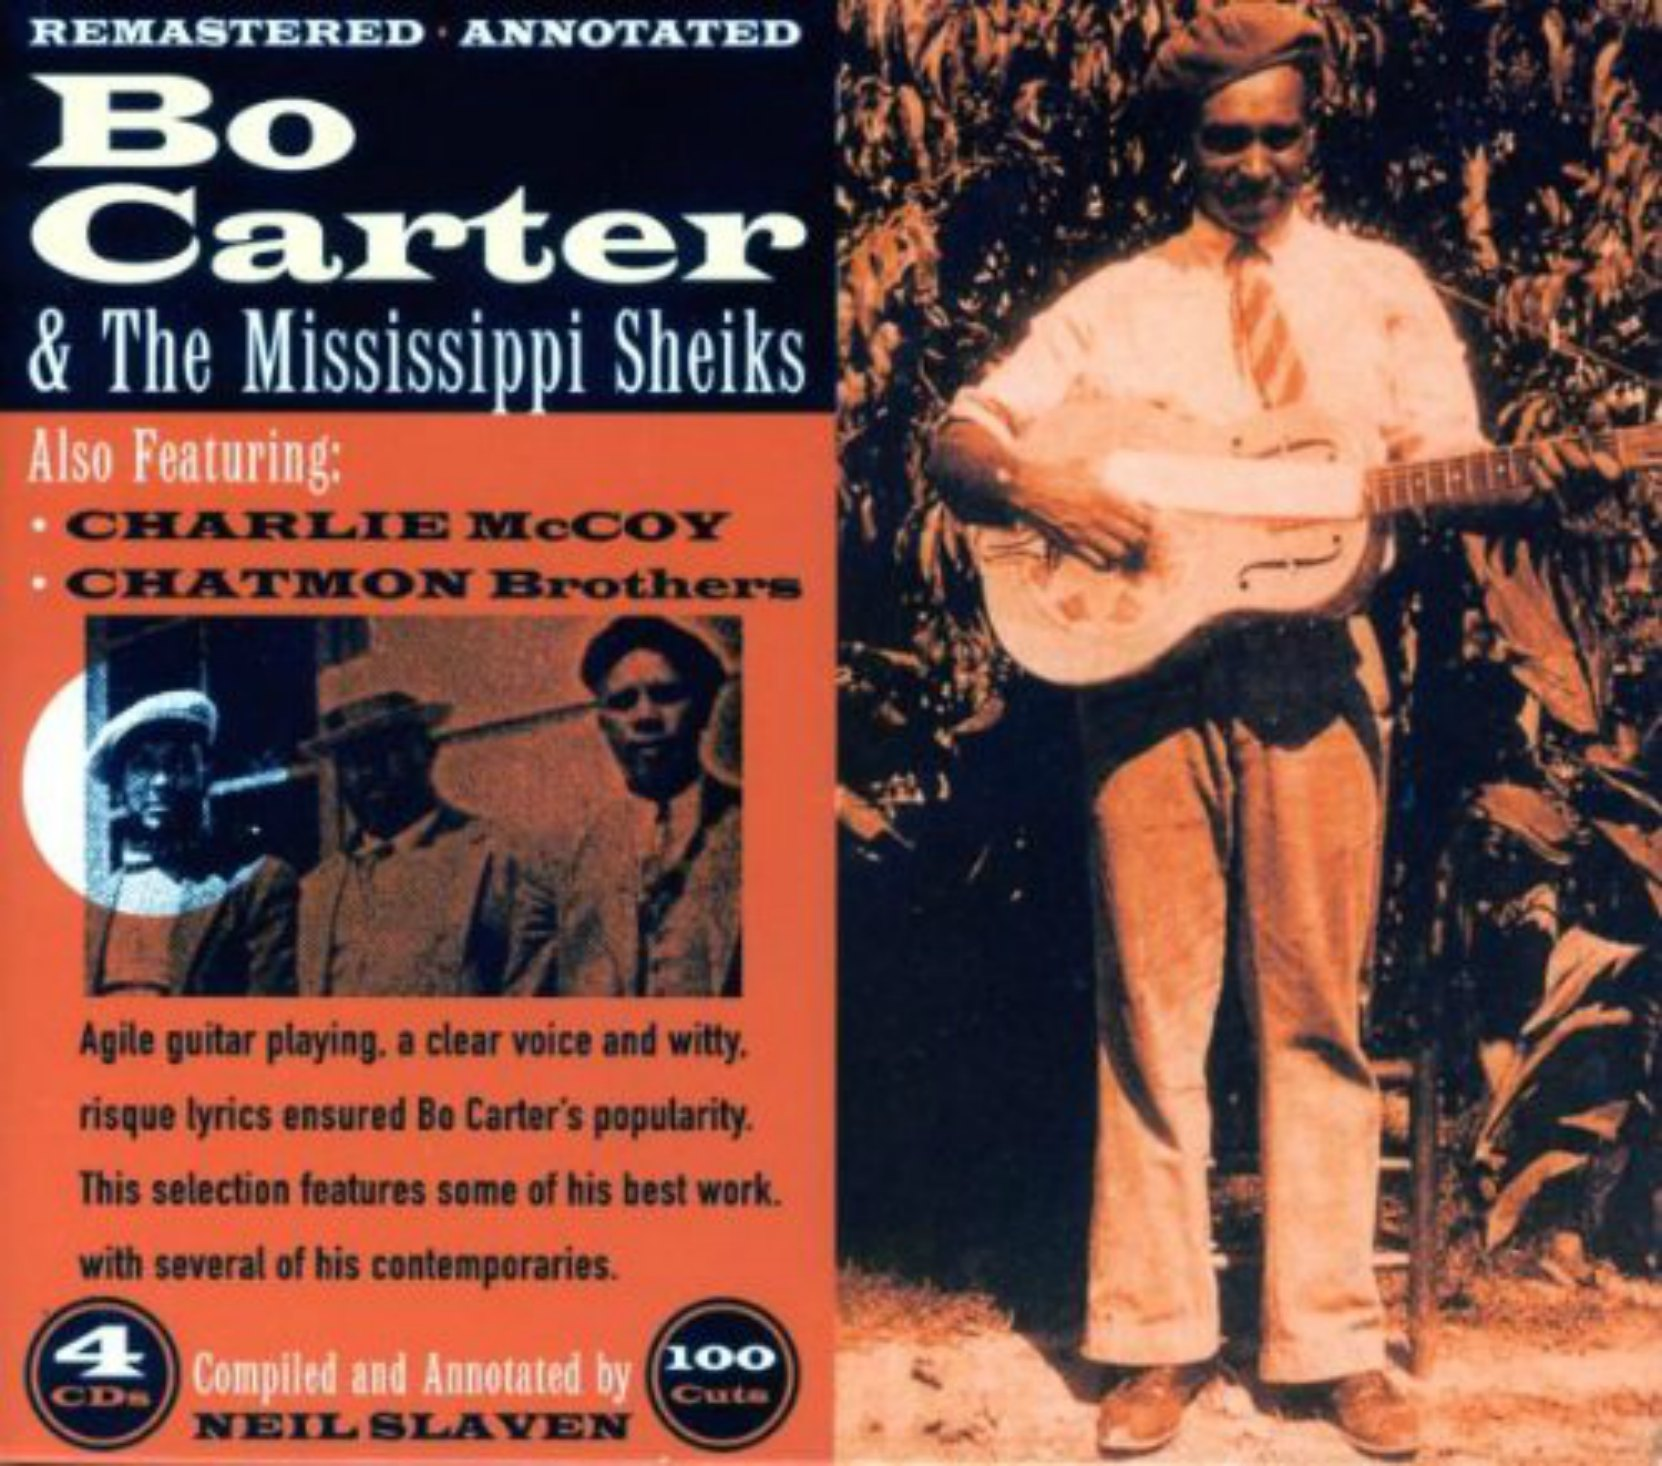 CD cover, Bo Carter & The Mississippi Sheiks, a 4 CD, 100 track collection released on JSP Records.